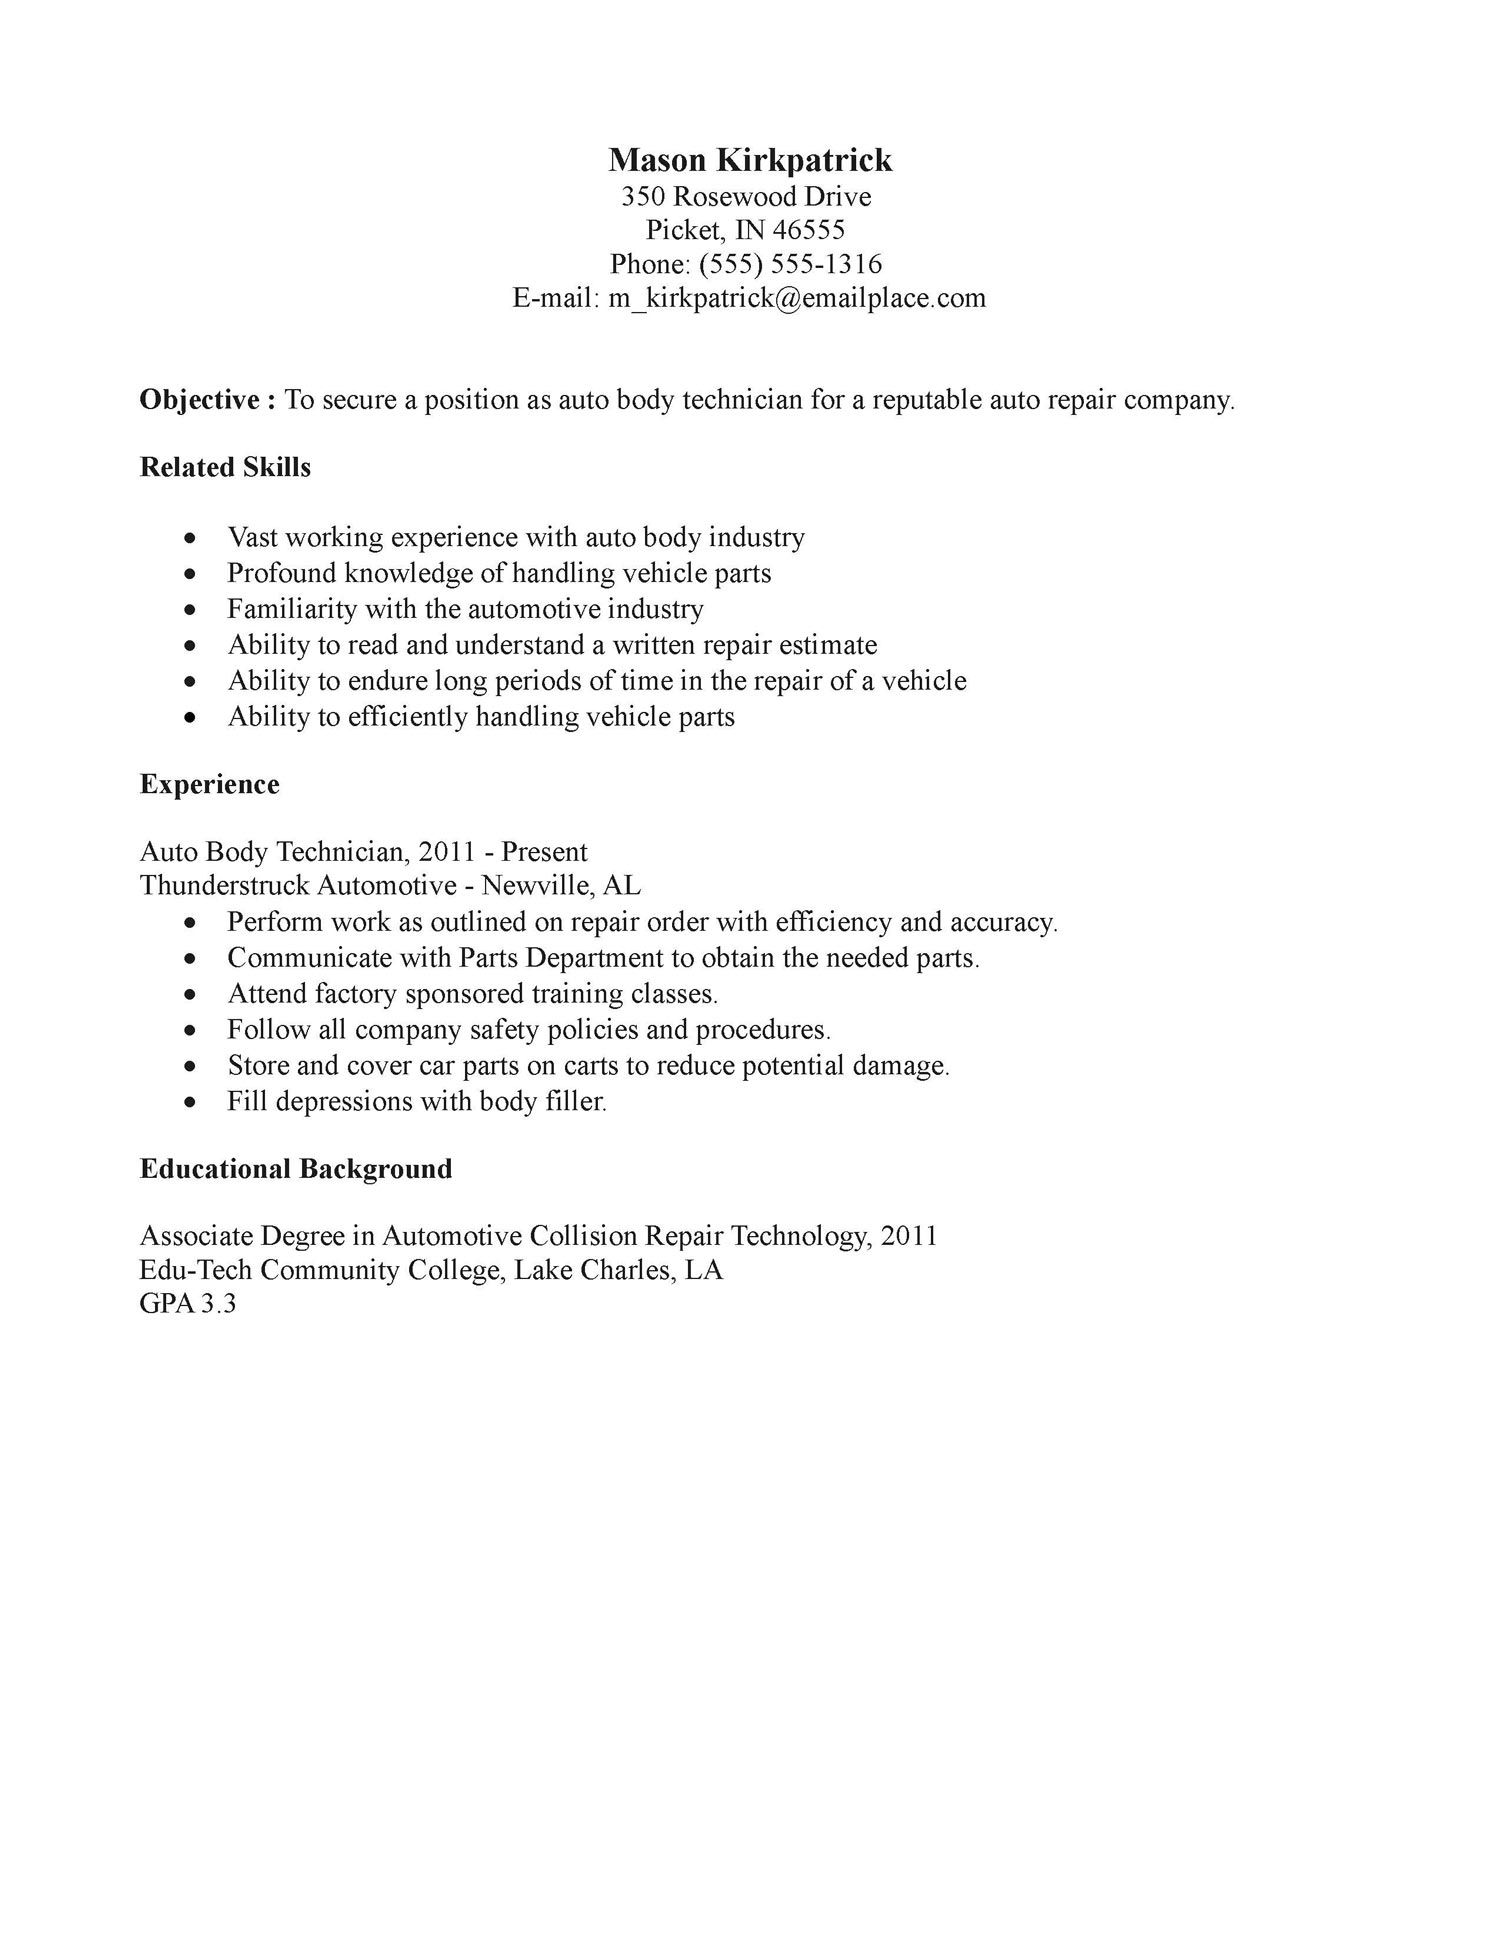 resume sample auto mechanic objective examples body technician with tables technical Resume Auto Mechanic Resume Sample